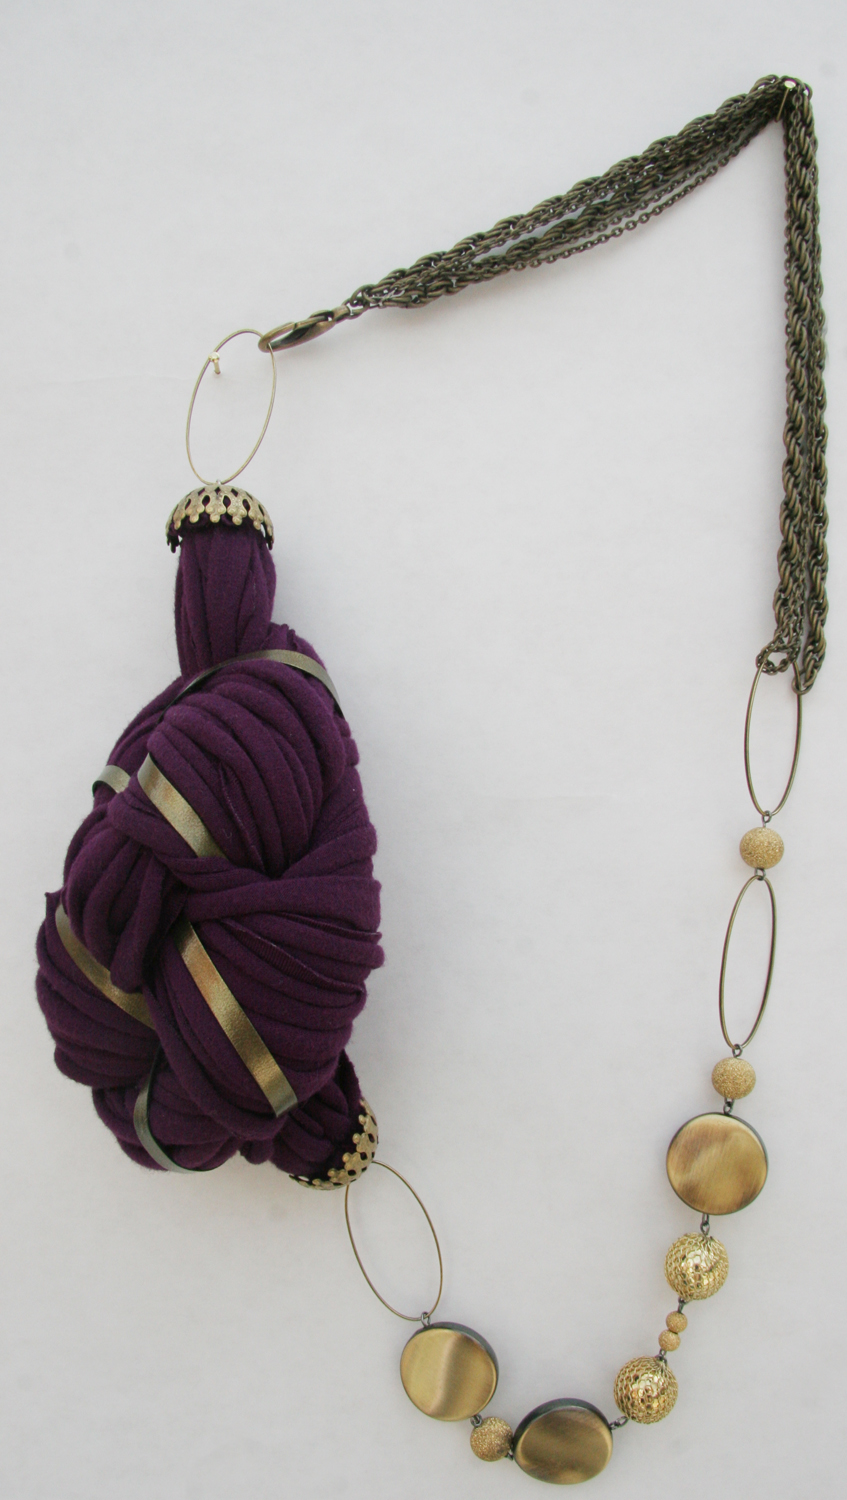 8) IMG_9602 - KNOTTED NECKLACE FULL.jpg